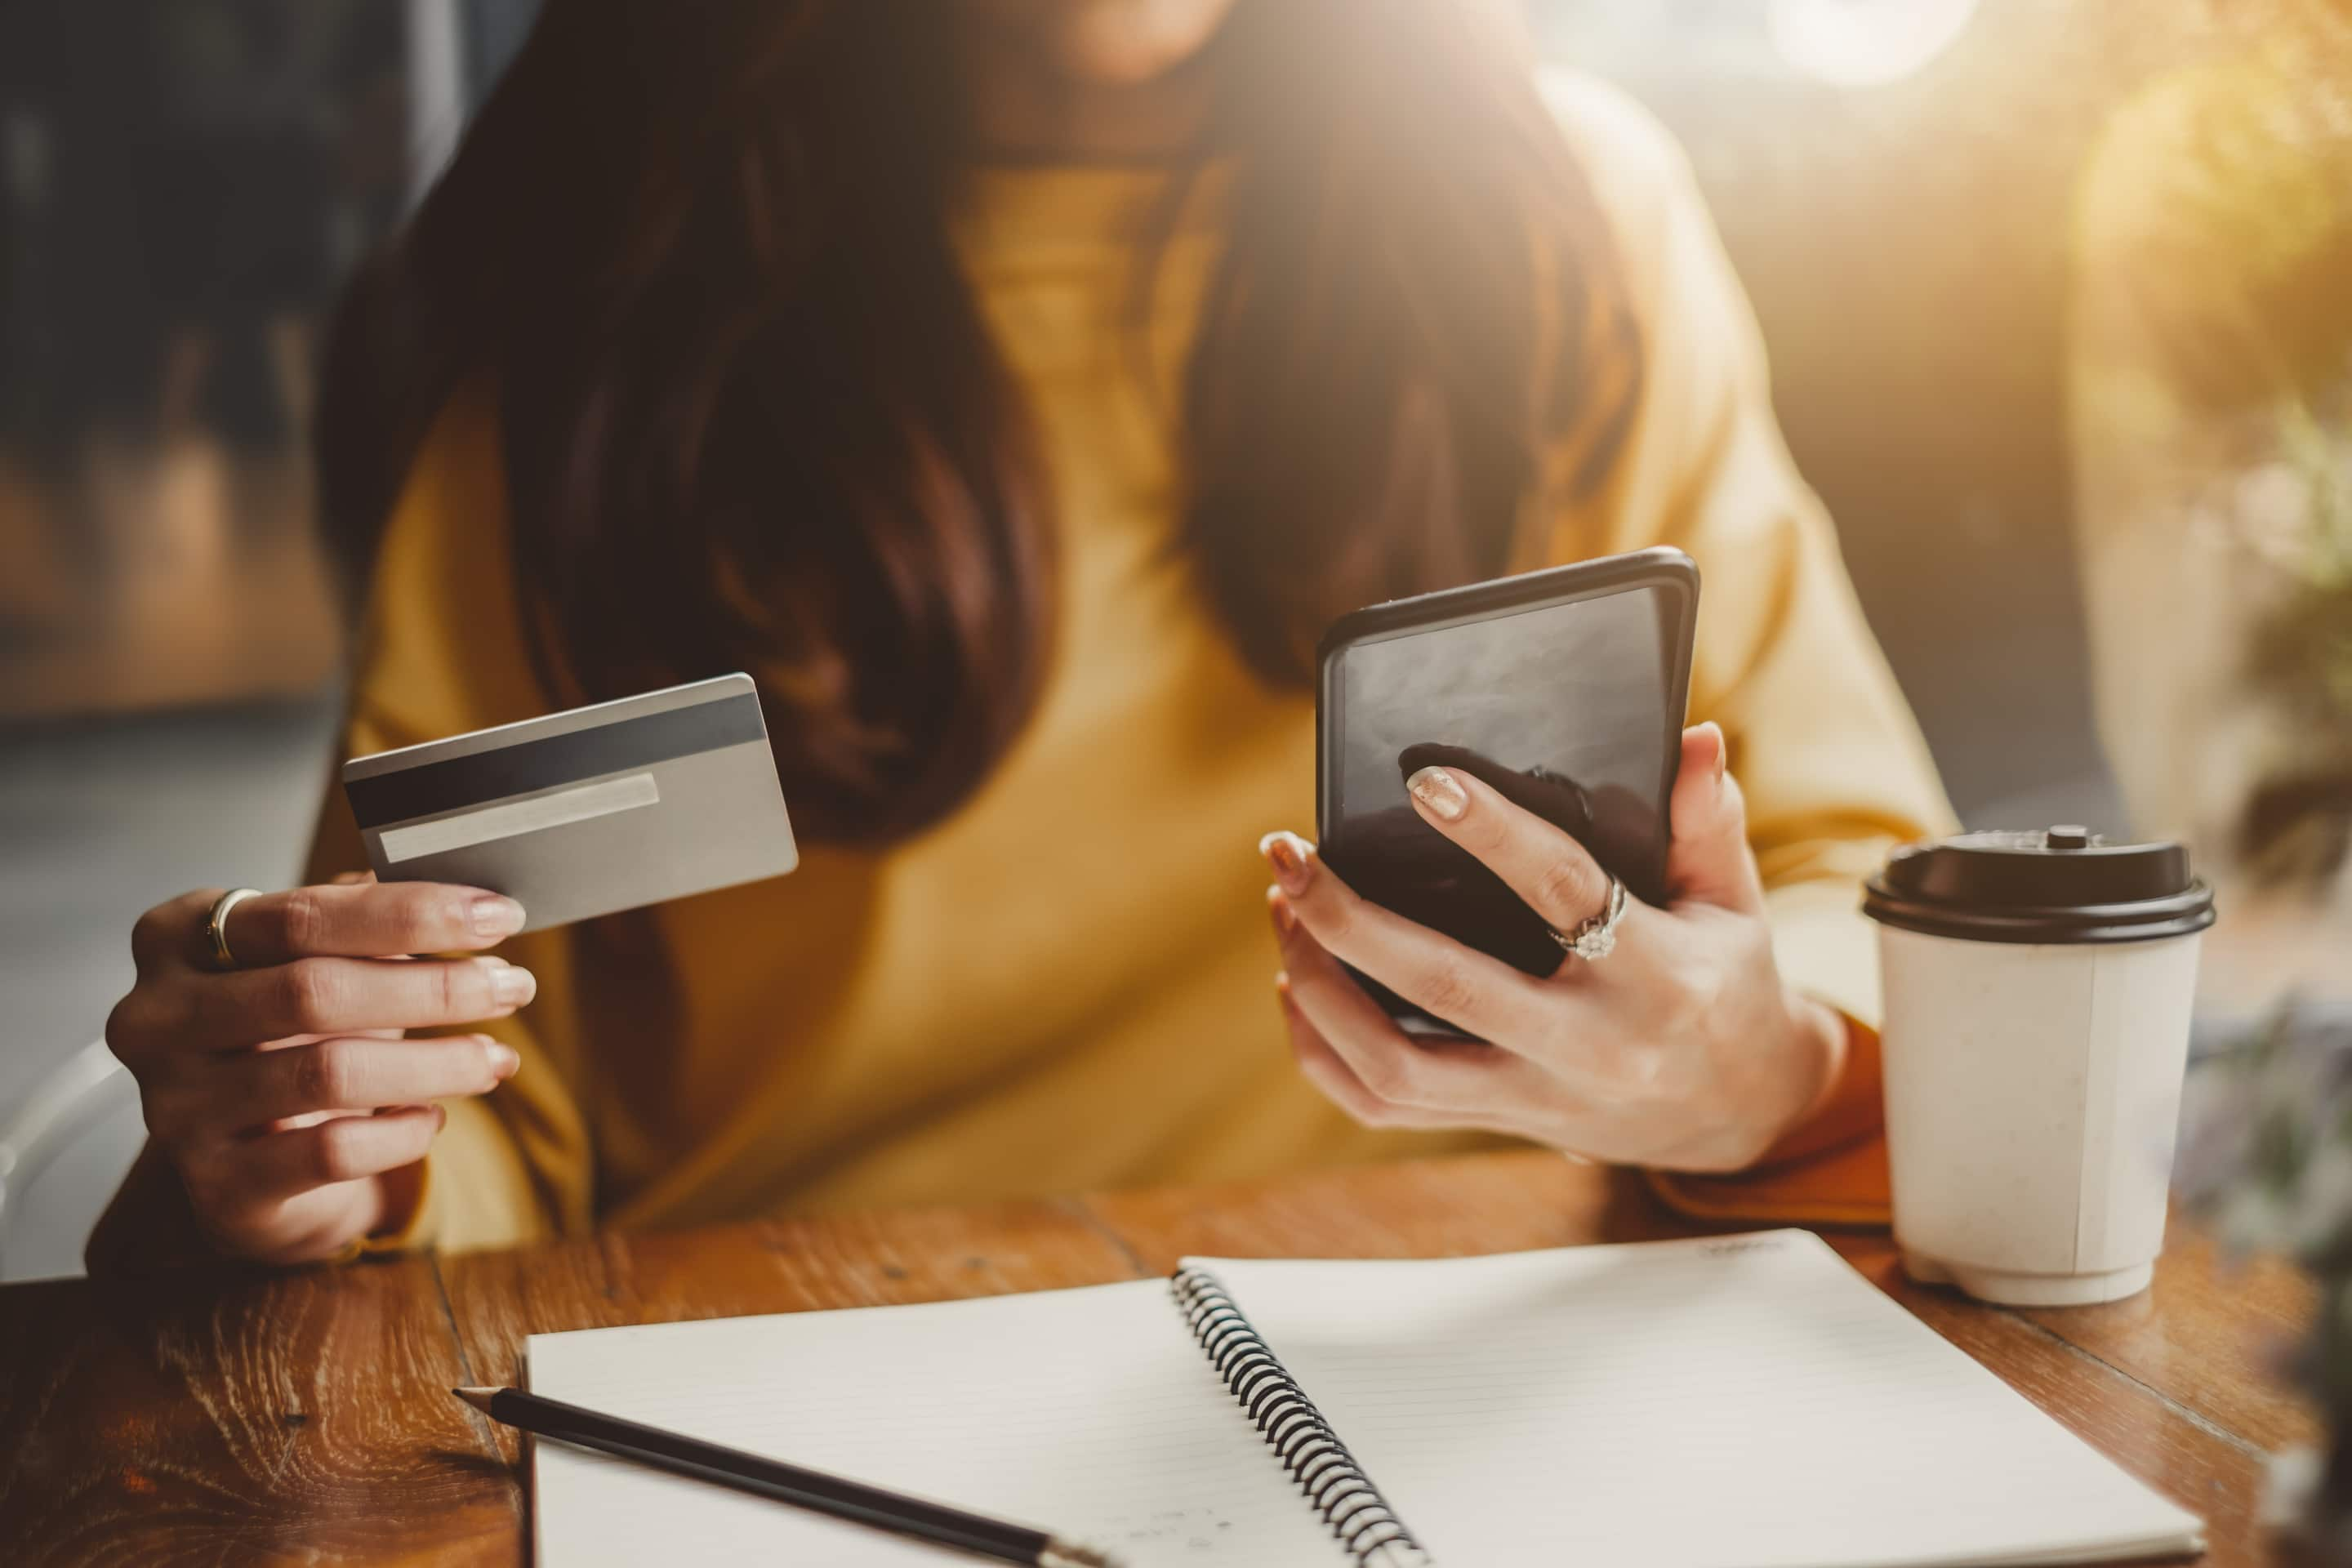 Woman Using Smart Phone And Credit Card